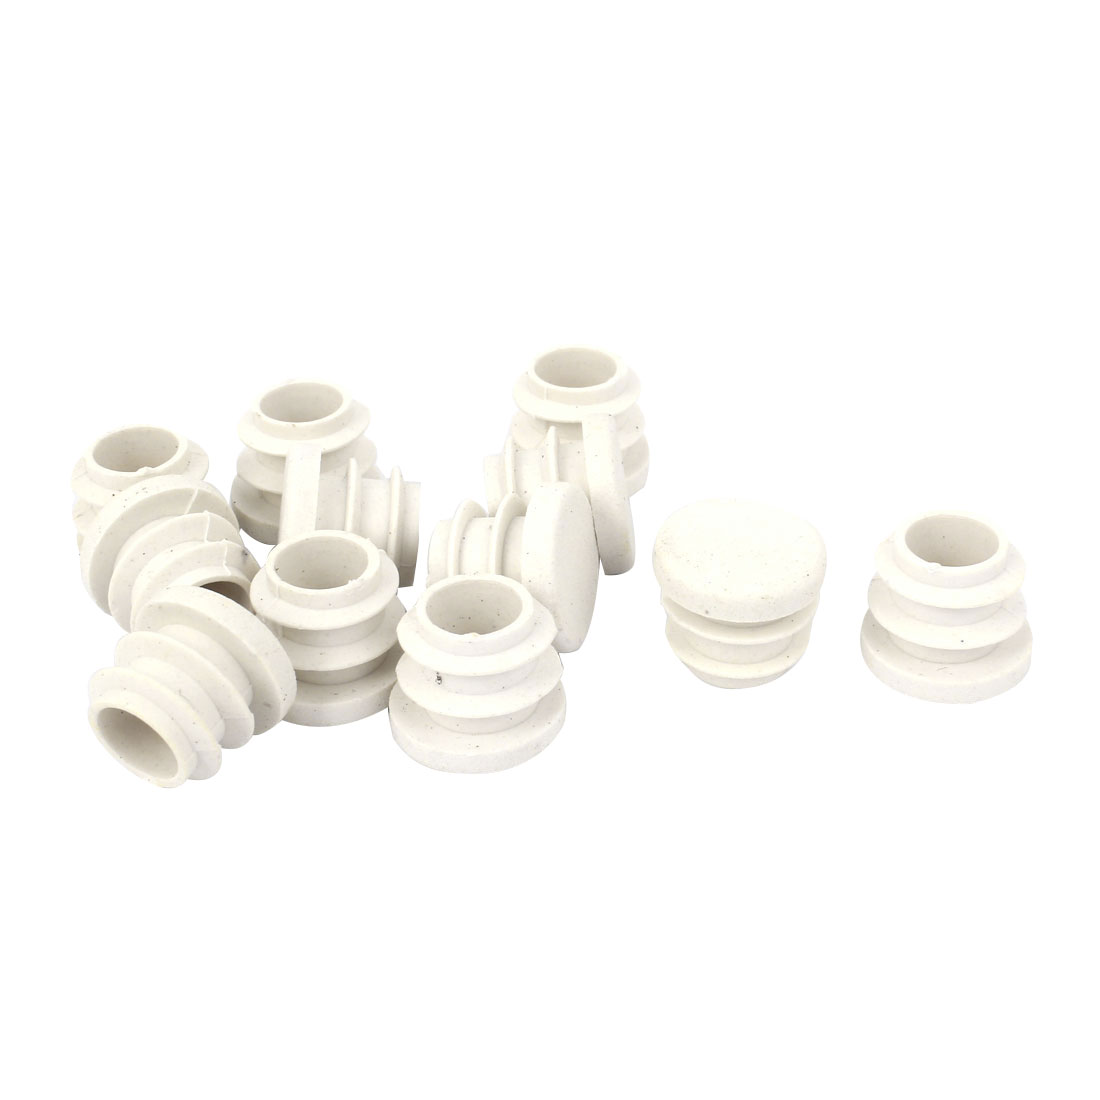 15mm Dia White Plastic Blanking End Cap Caps Tube Pipe Inserts Plug Bung 12 Pcs